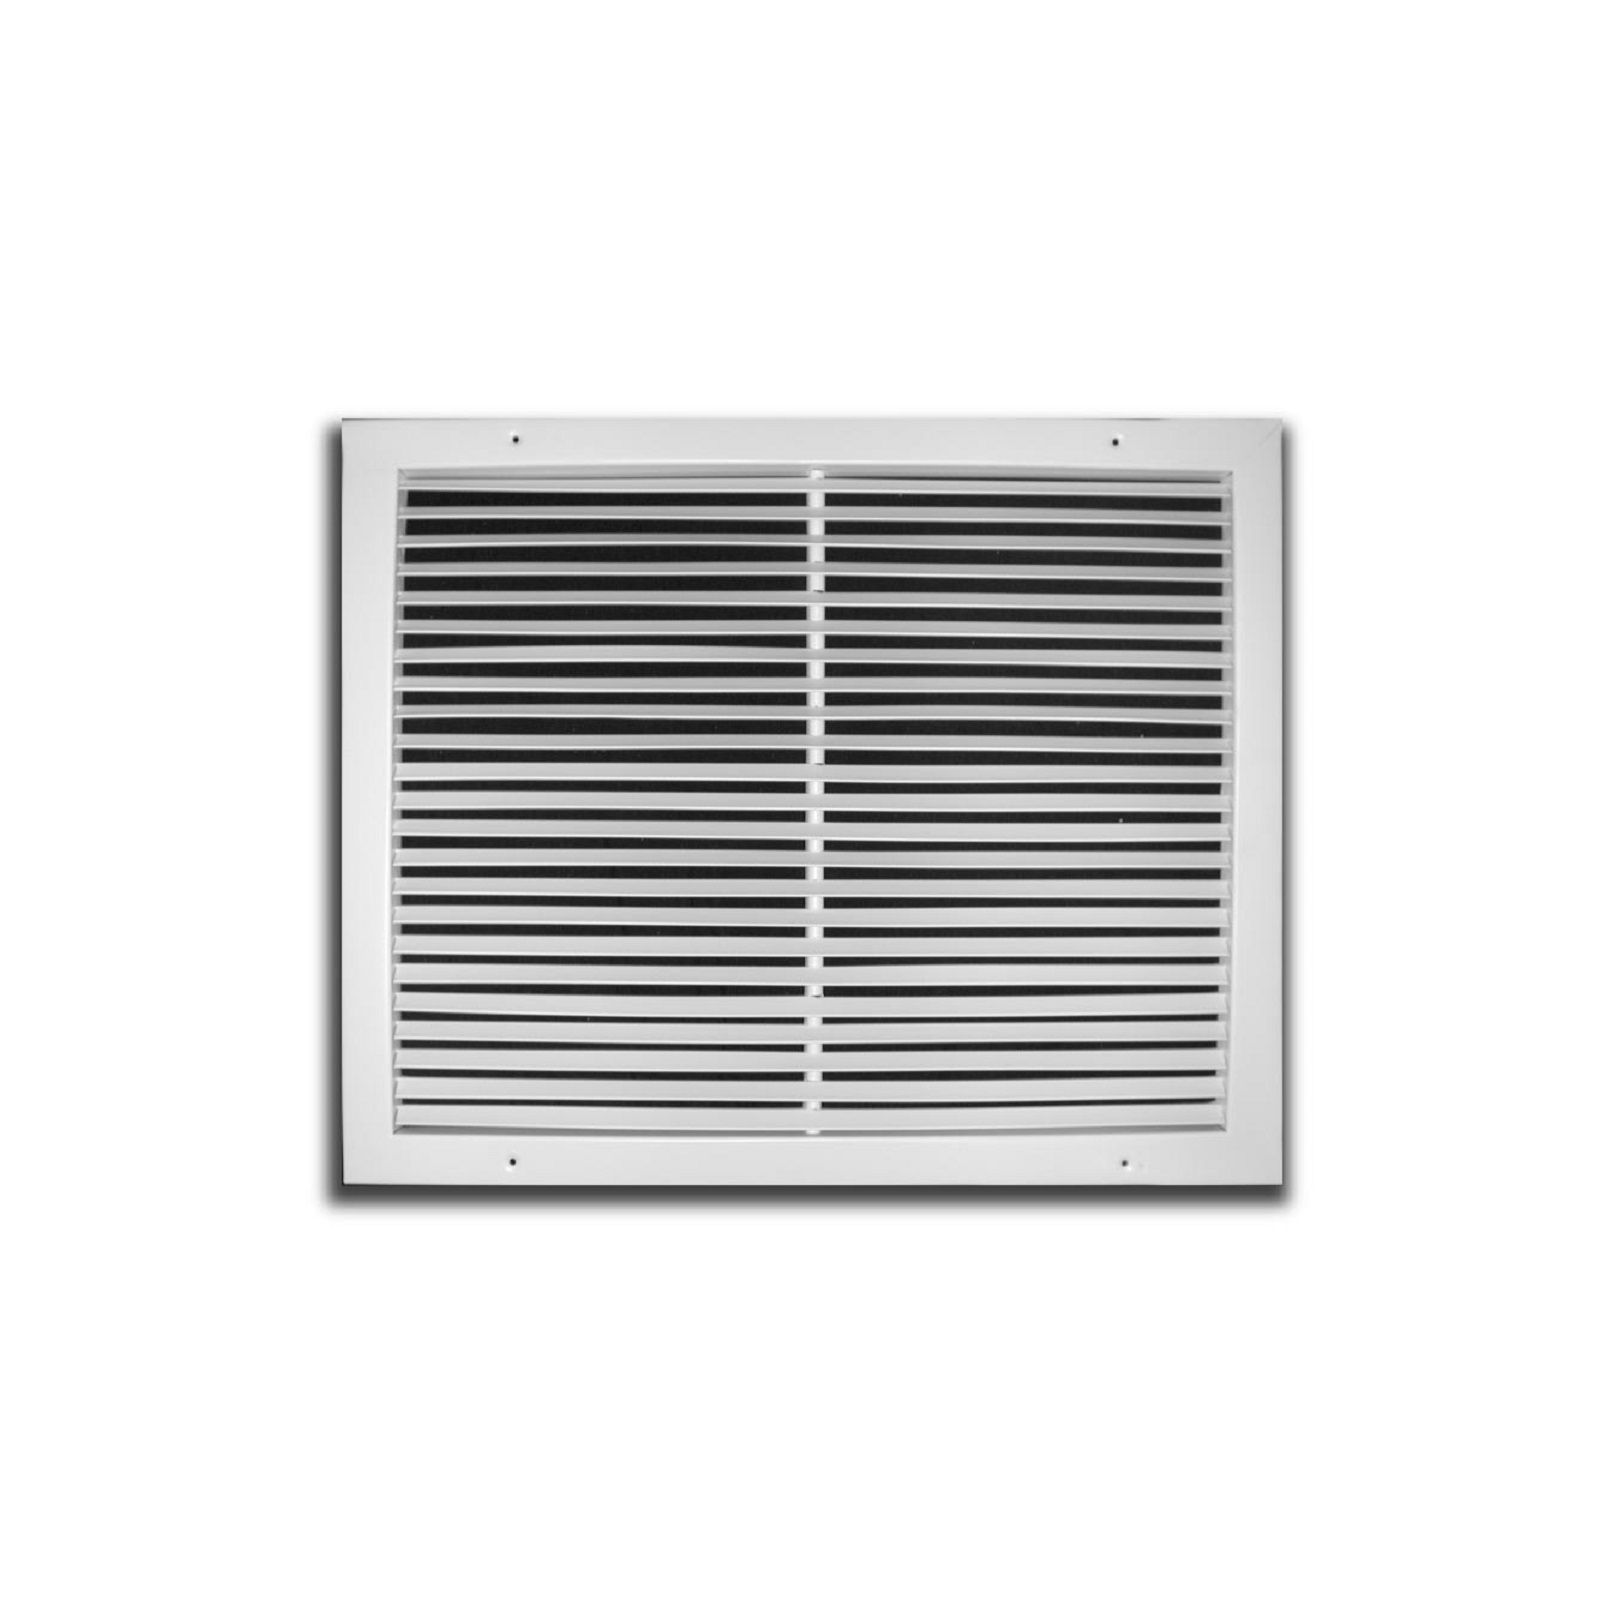 "TRUaire 270 12X12 - Steel Fixed Bar Return Air Grille, White, 12"" X 12"""